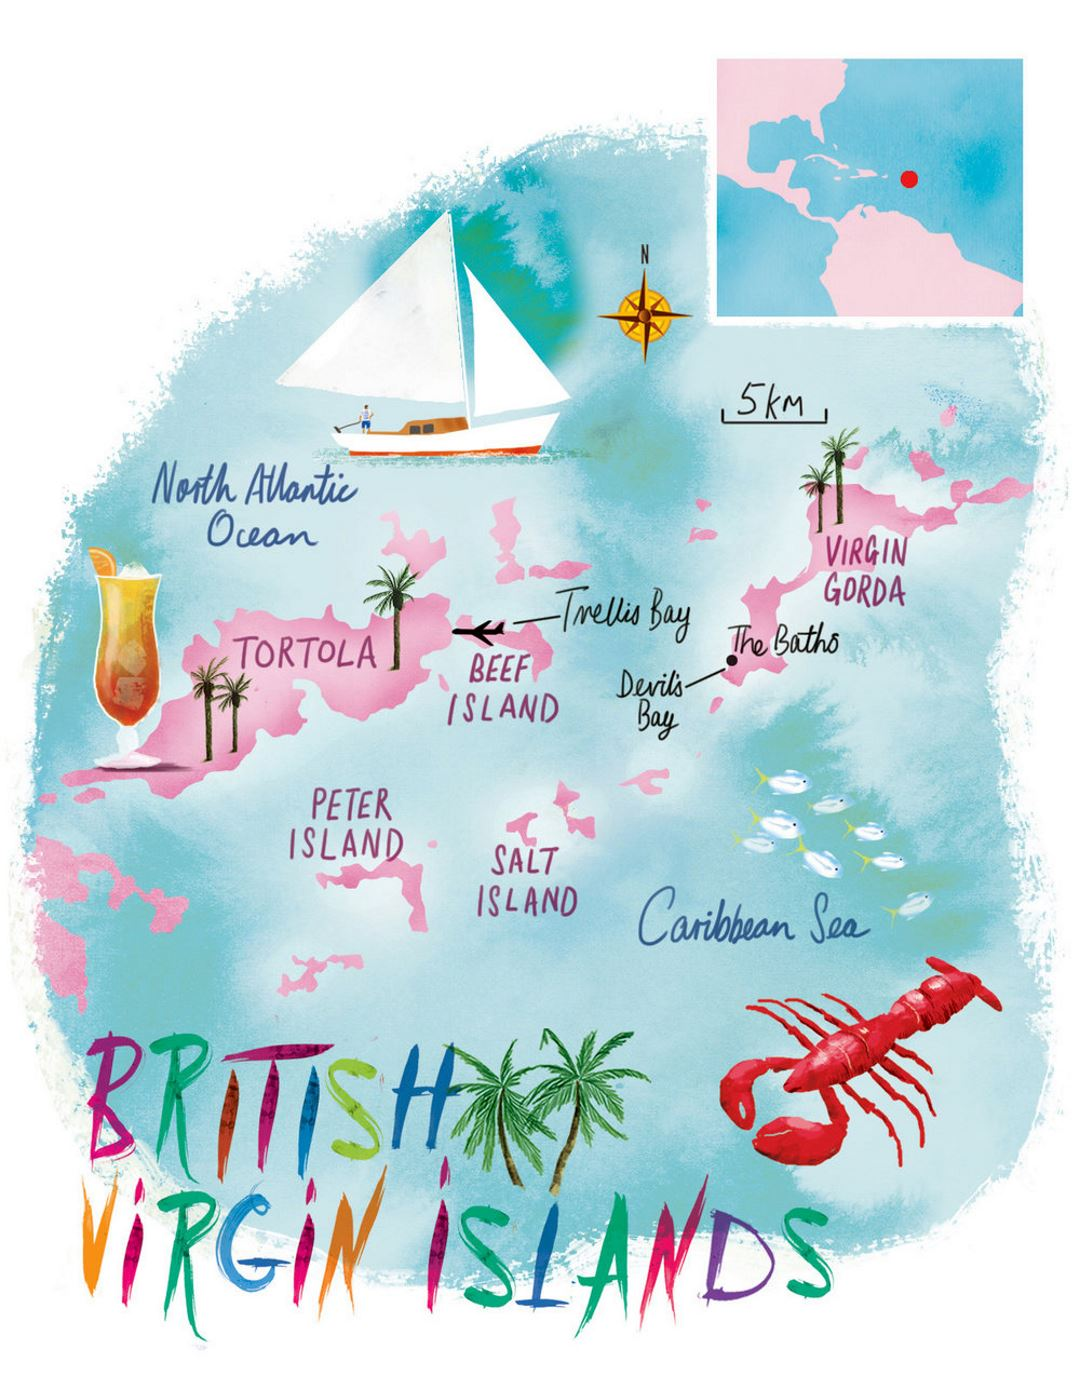 Detailed illustrated map of British Virgin Islands